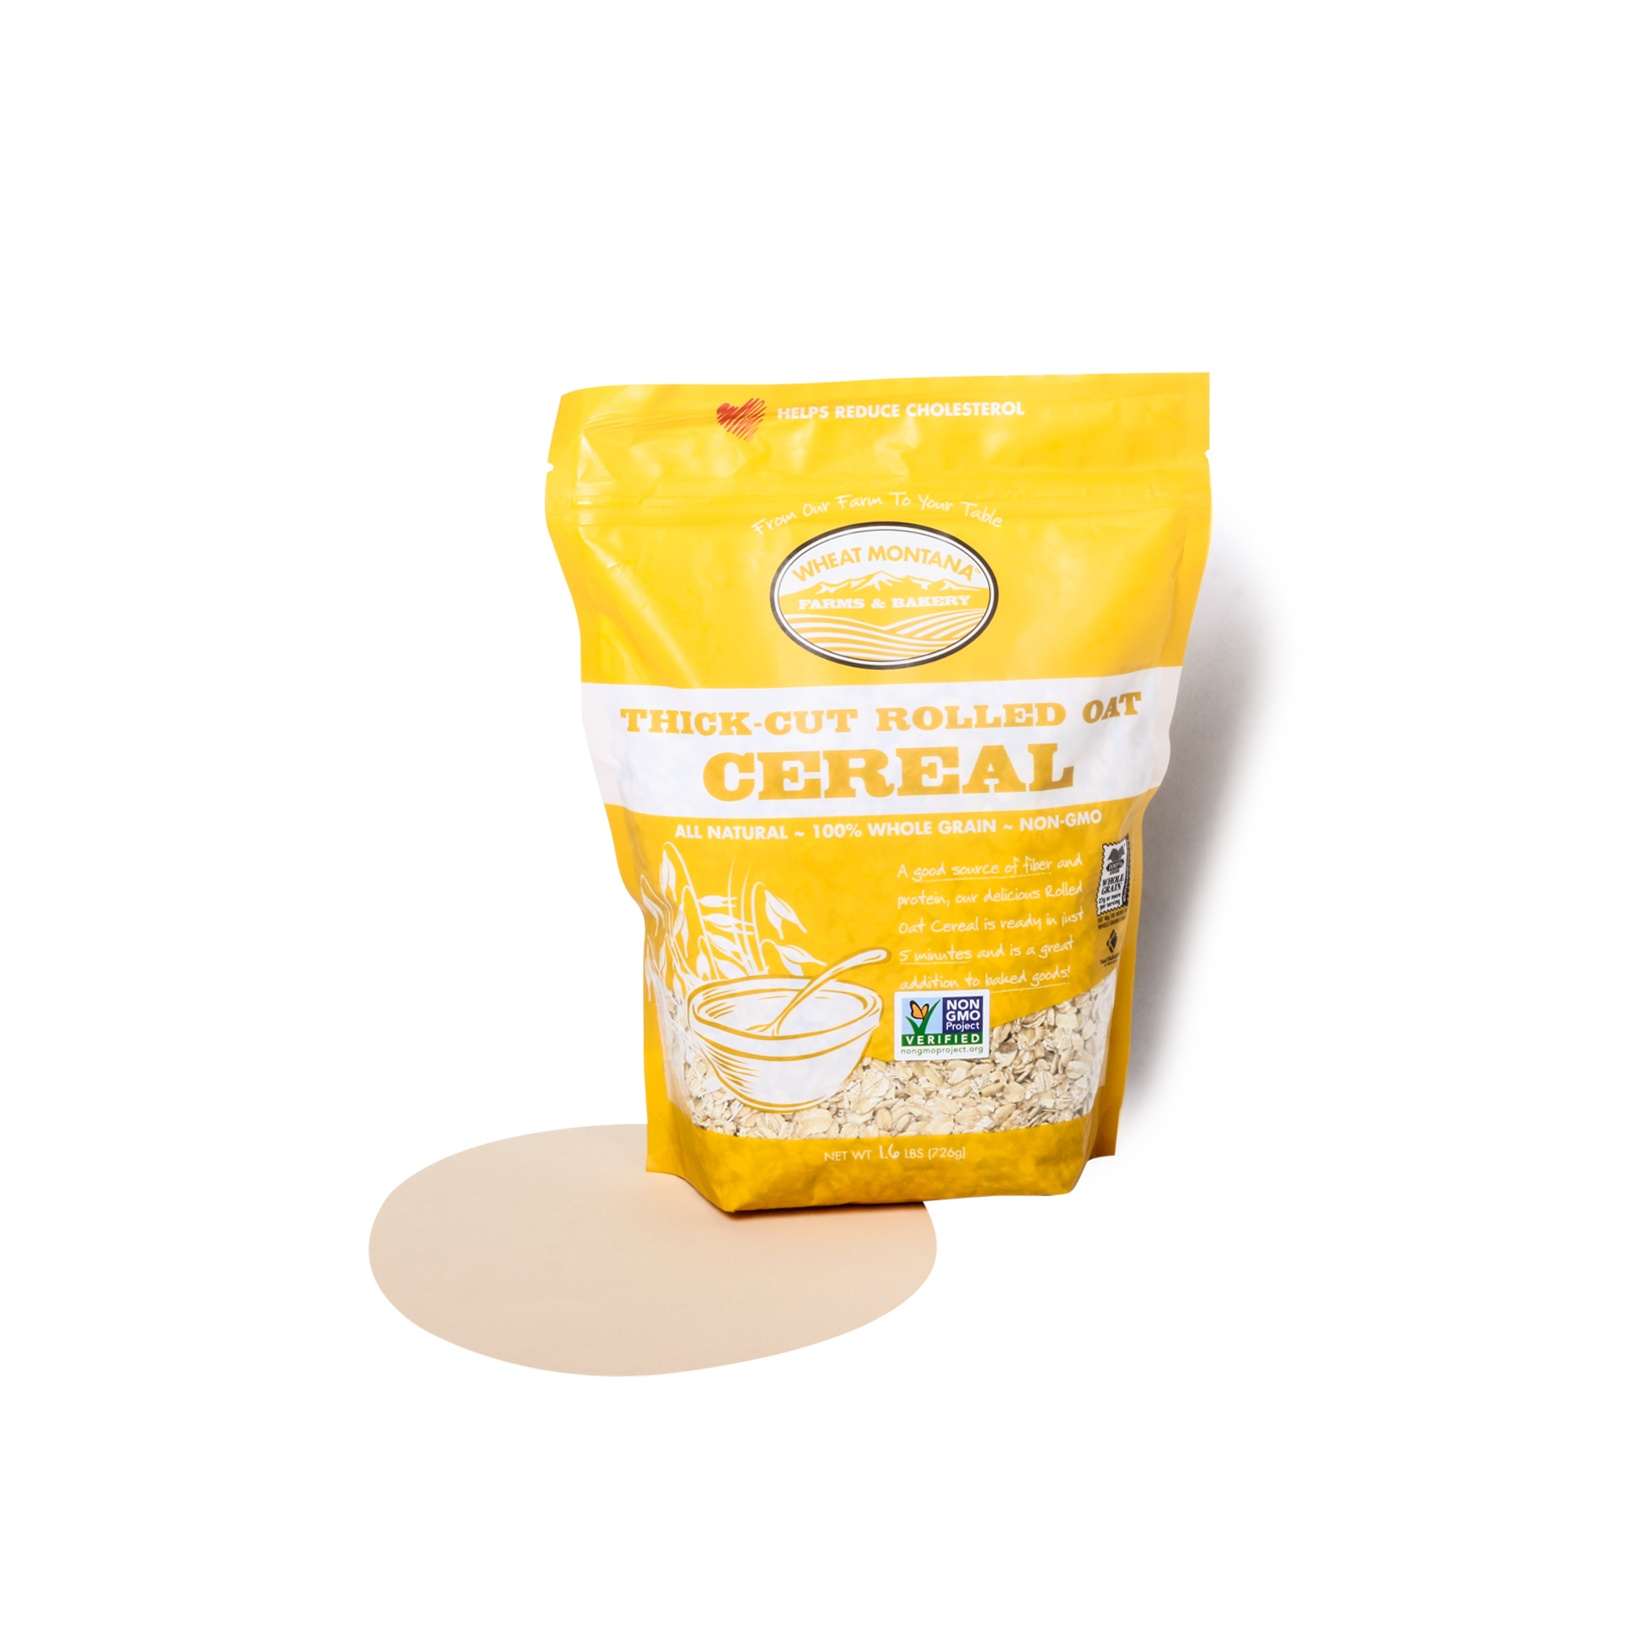 Wheat Montana-Thick Cut Rolled Oat Cereal